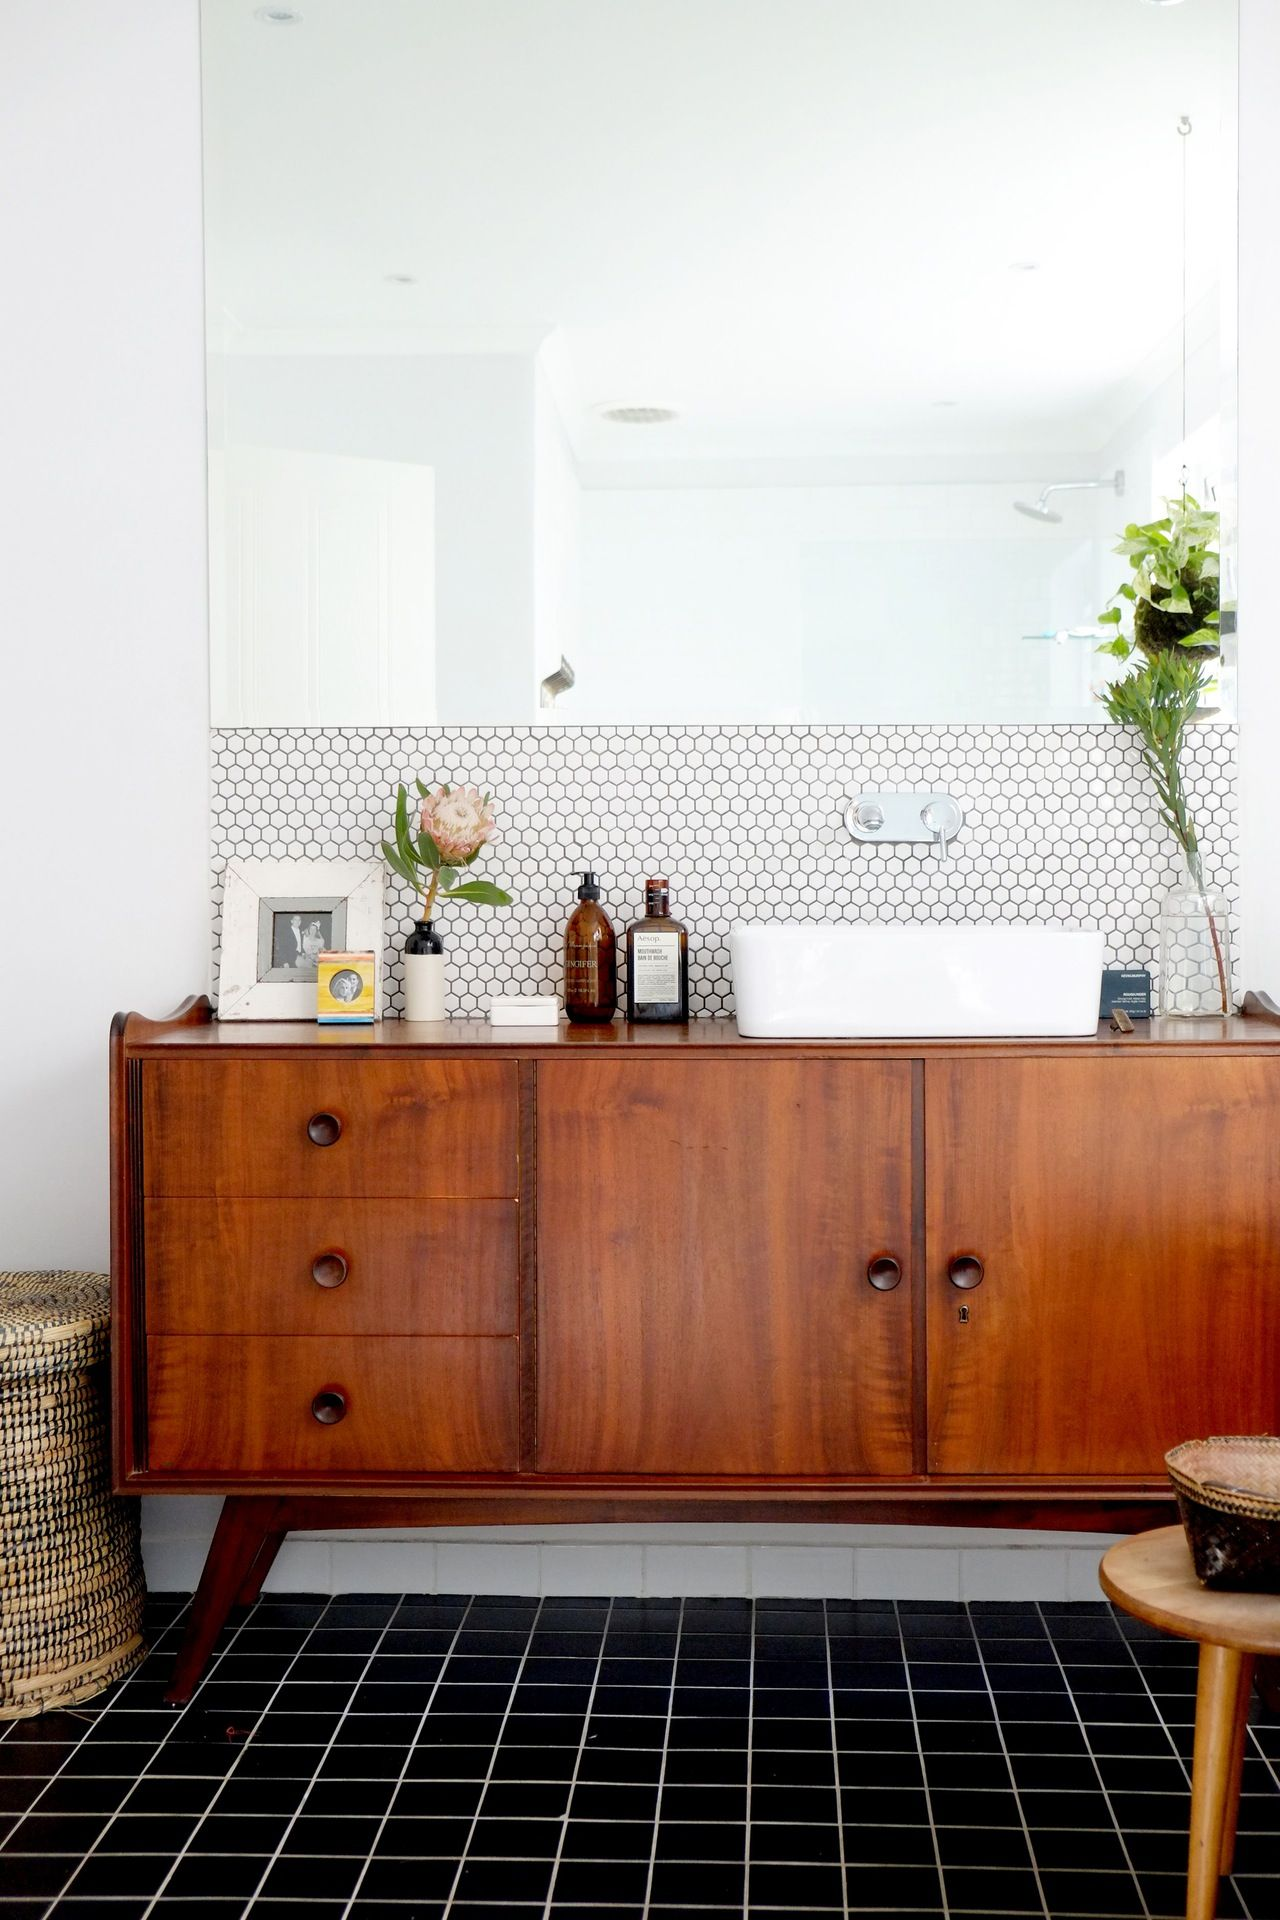 Lei Dijon S Stylish Quirky Home In Cape Town Midcentury Bathroom Vanity